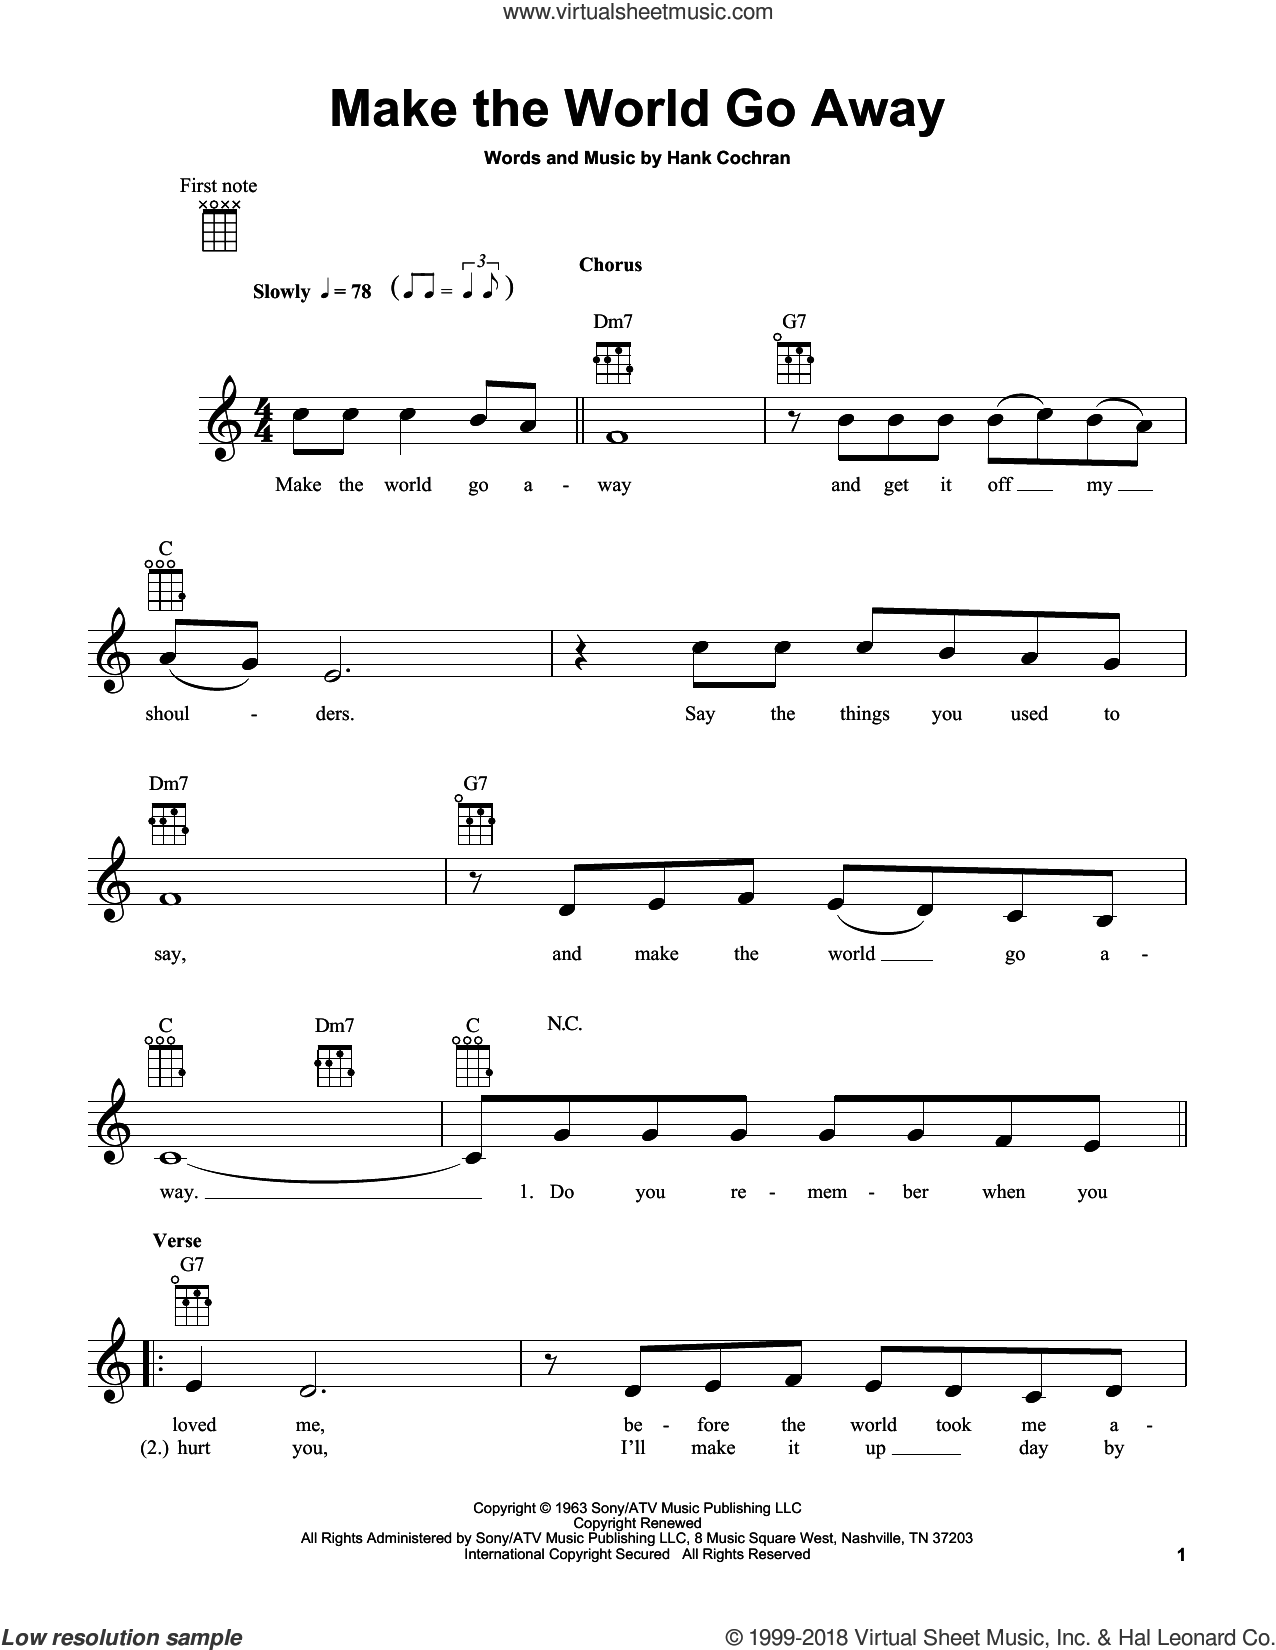 Make The World Go Away sheet music for ukulele by Eddy Arnold, Elvis Presley and Hank Cochran, intermediate ukulele. Score Image Preview.